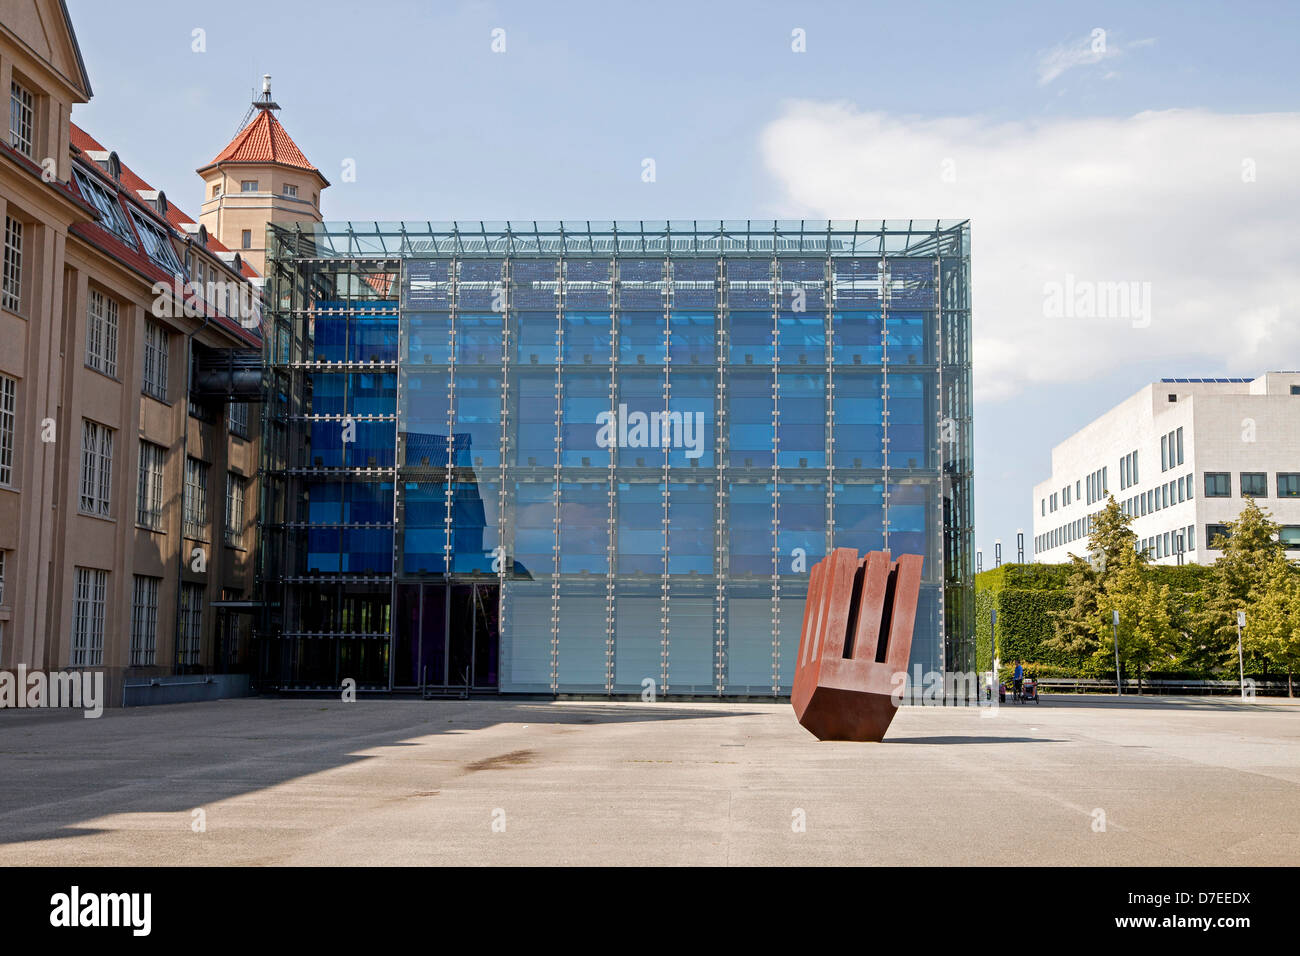 Modern building of the ZKM, Zentrum fuer Kunst und Medientechnologie, Centre for Art and Media Technology, in Karlsruhe, - Stock Image